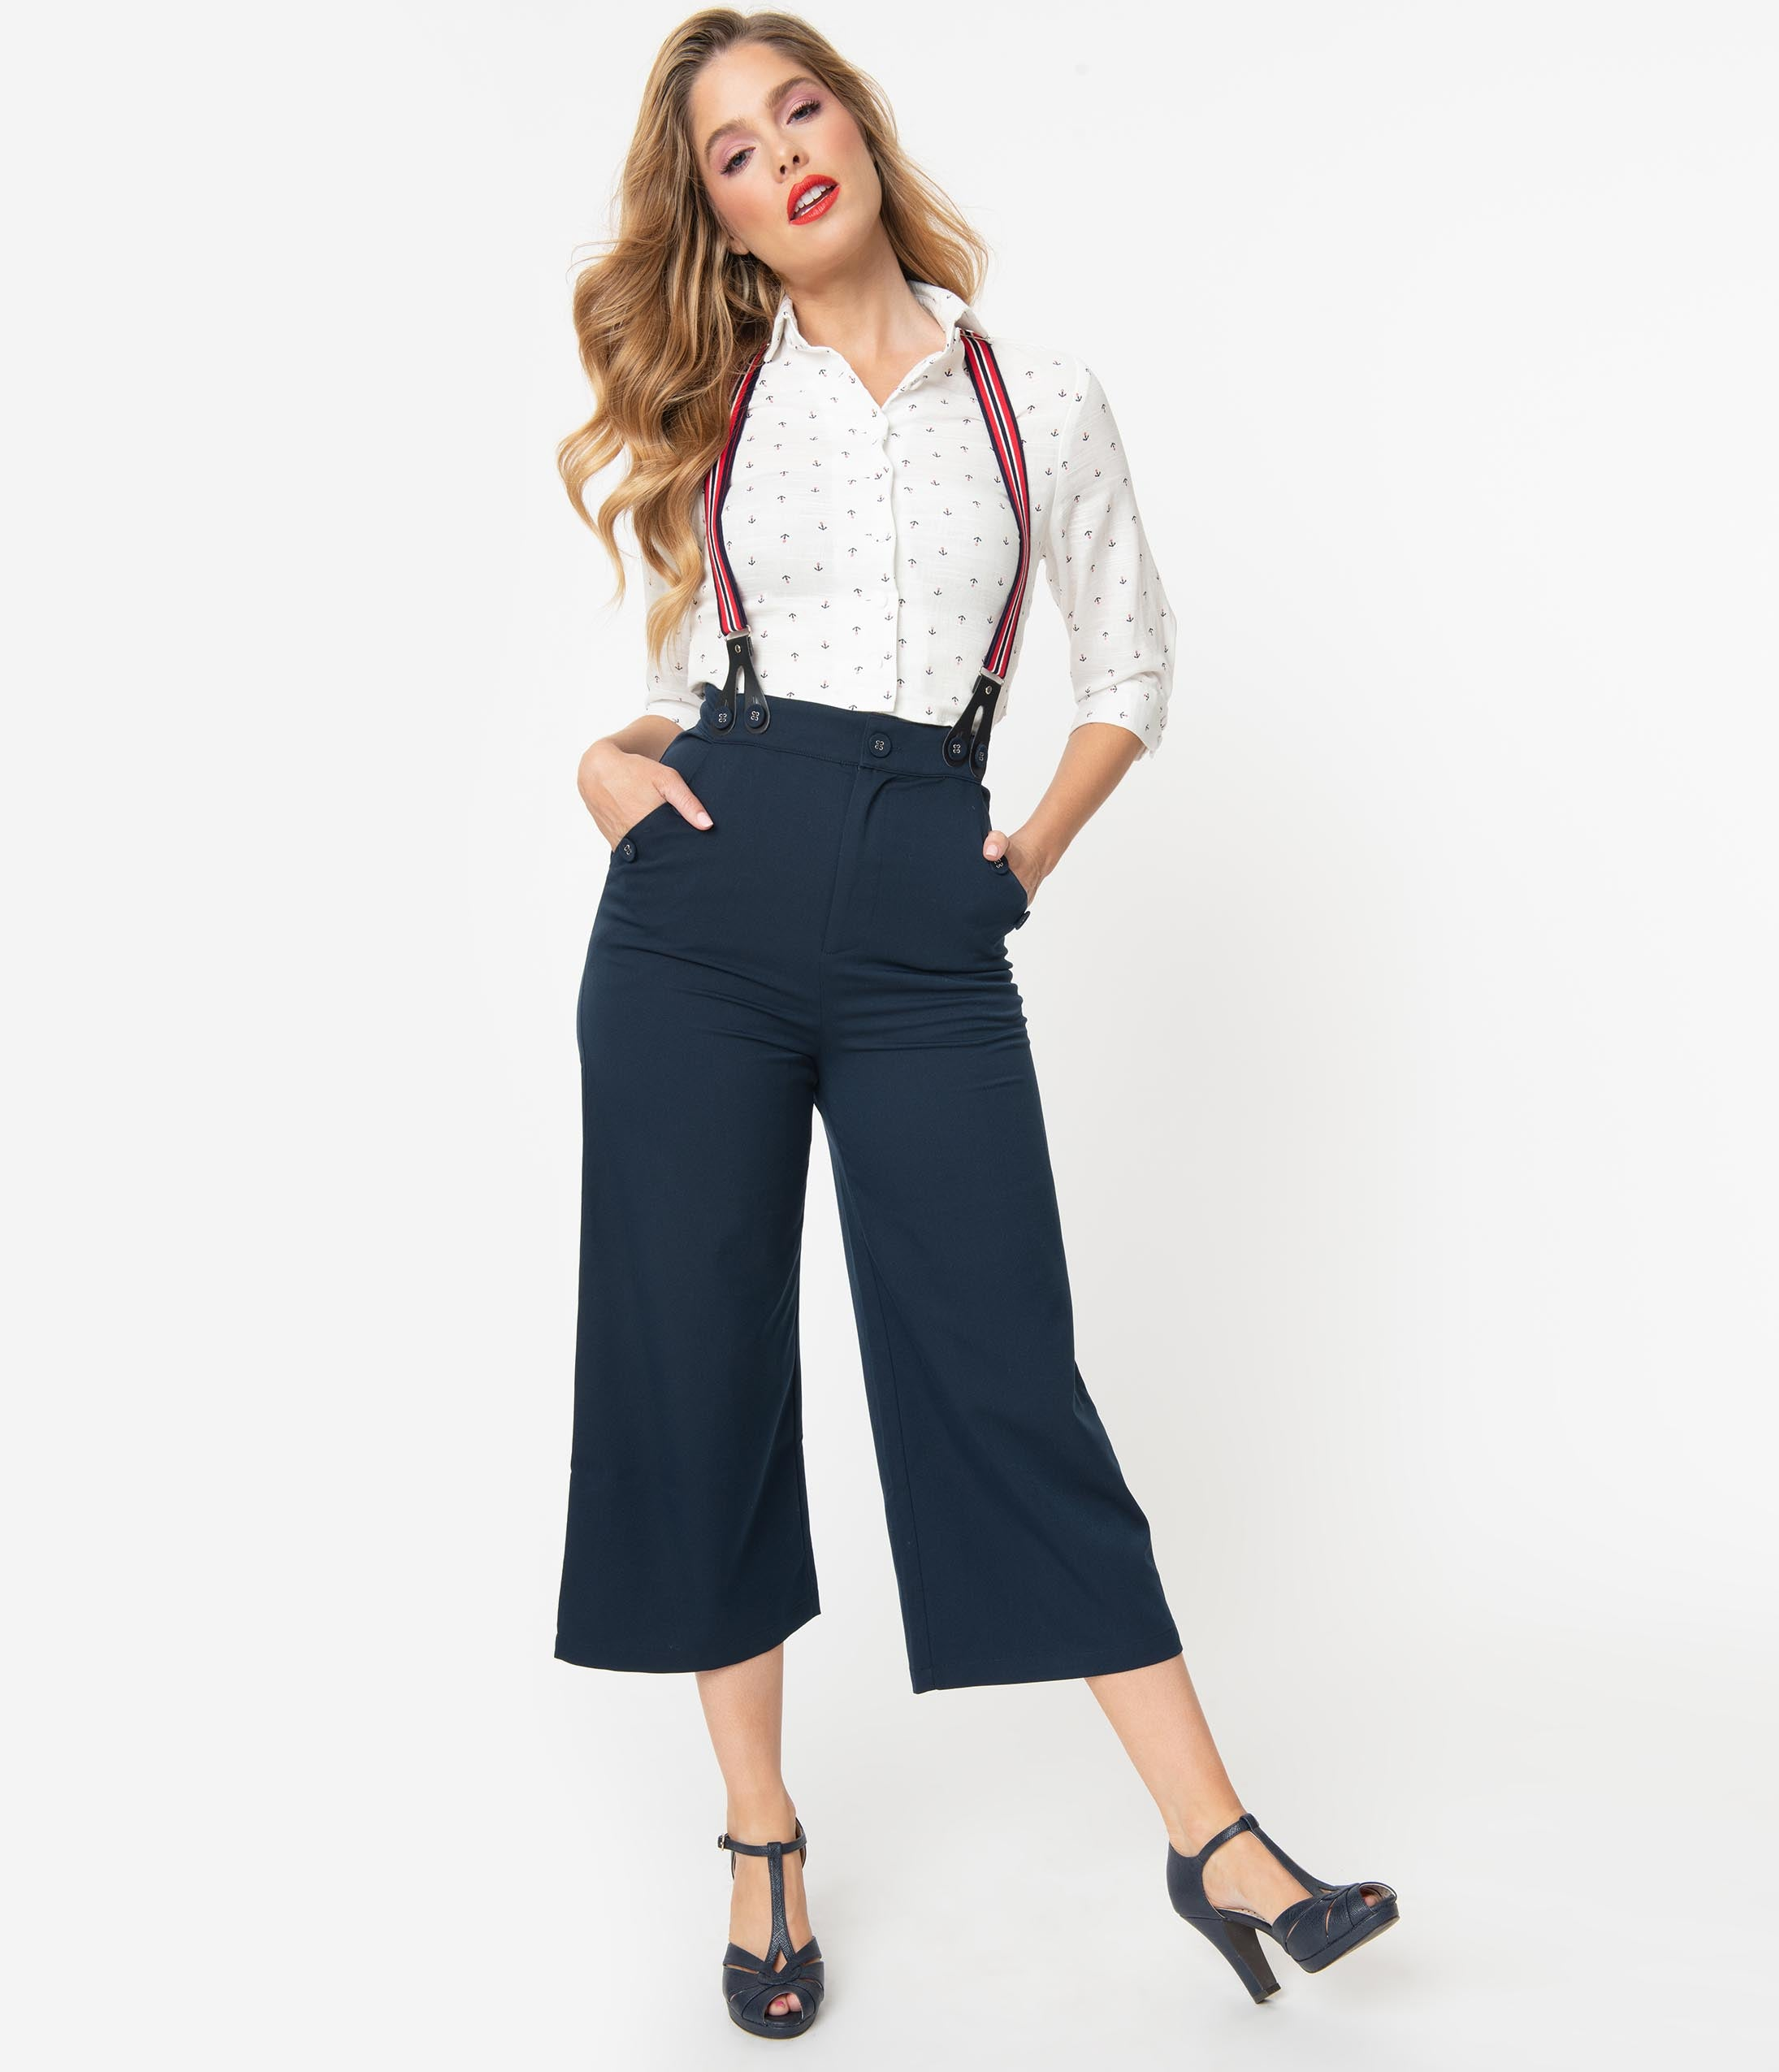 1950s Pants & Jeans- High Waist, Wide Leg, Capri, Pedal Pushers Voodoo Vixen Navy Blue High Waist Culottes With Suspenders $62.00 AT vintagedancer.com